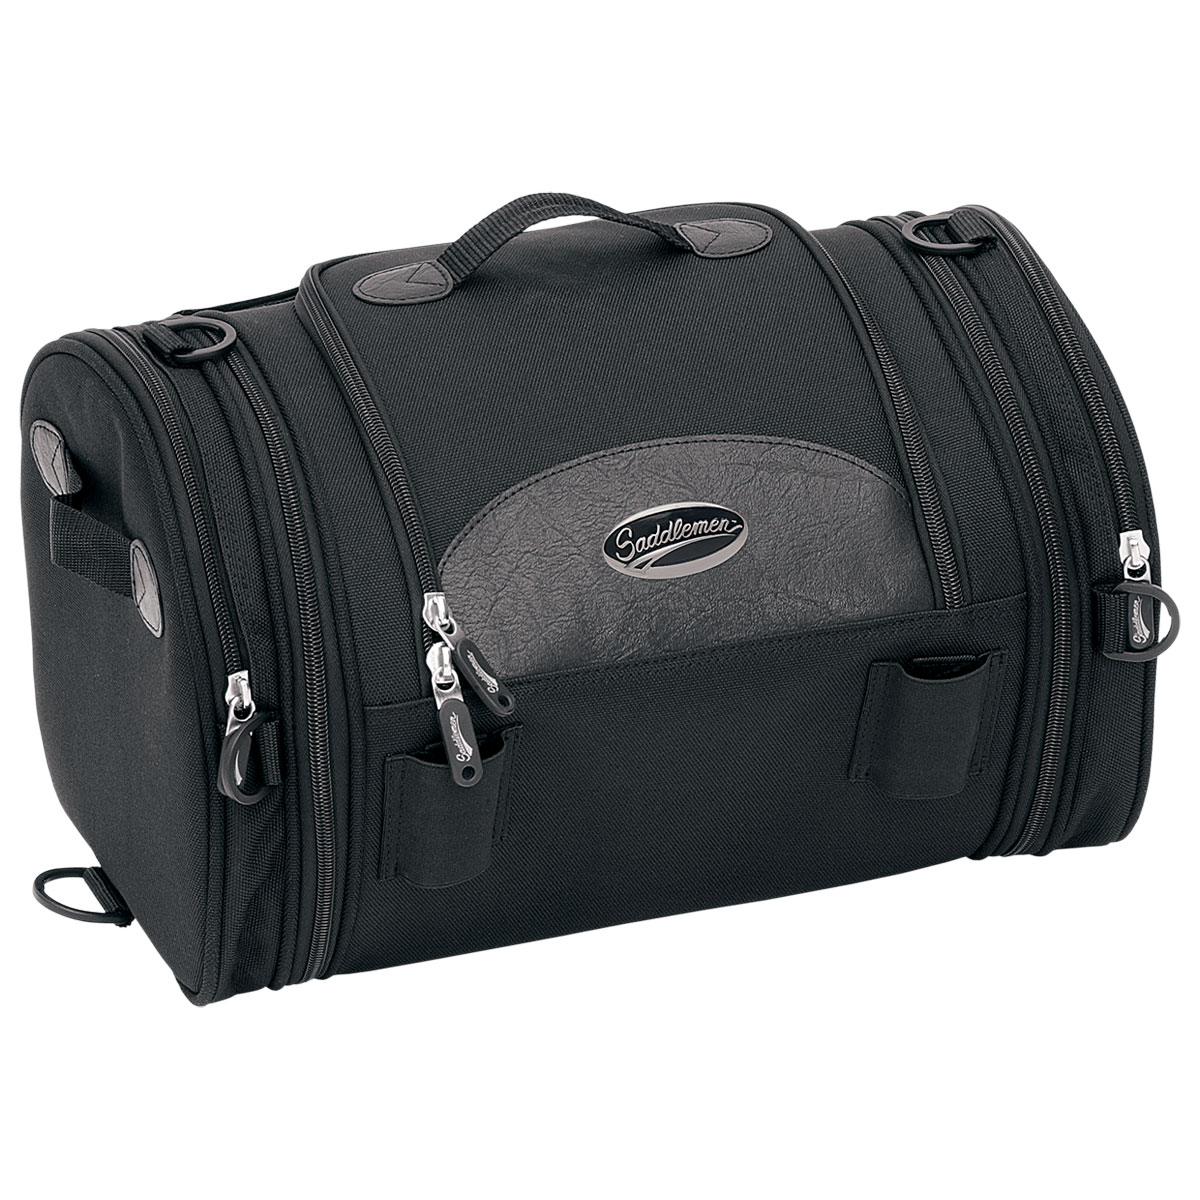 Saddlemen Deluxe Roll Bag